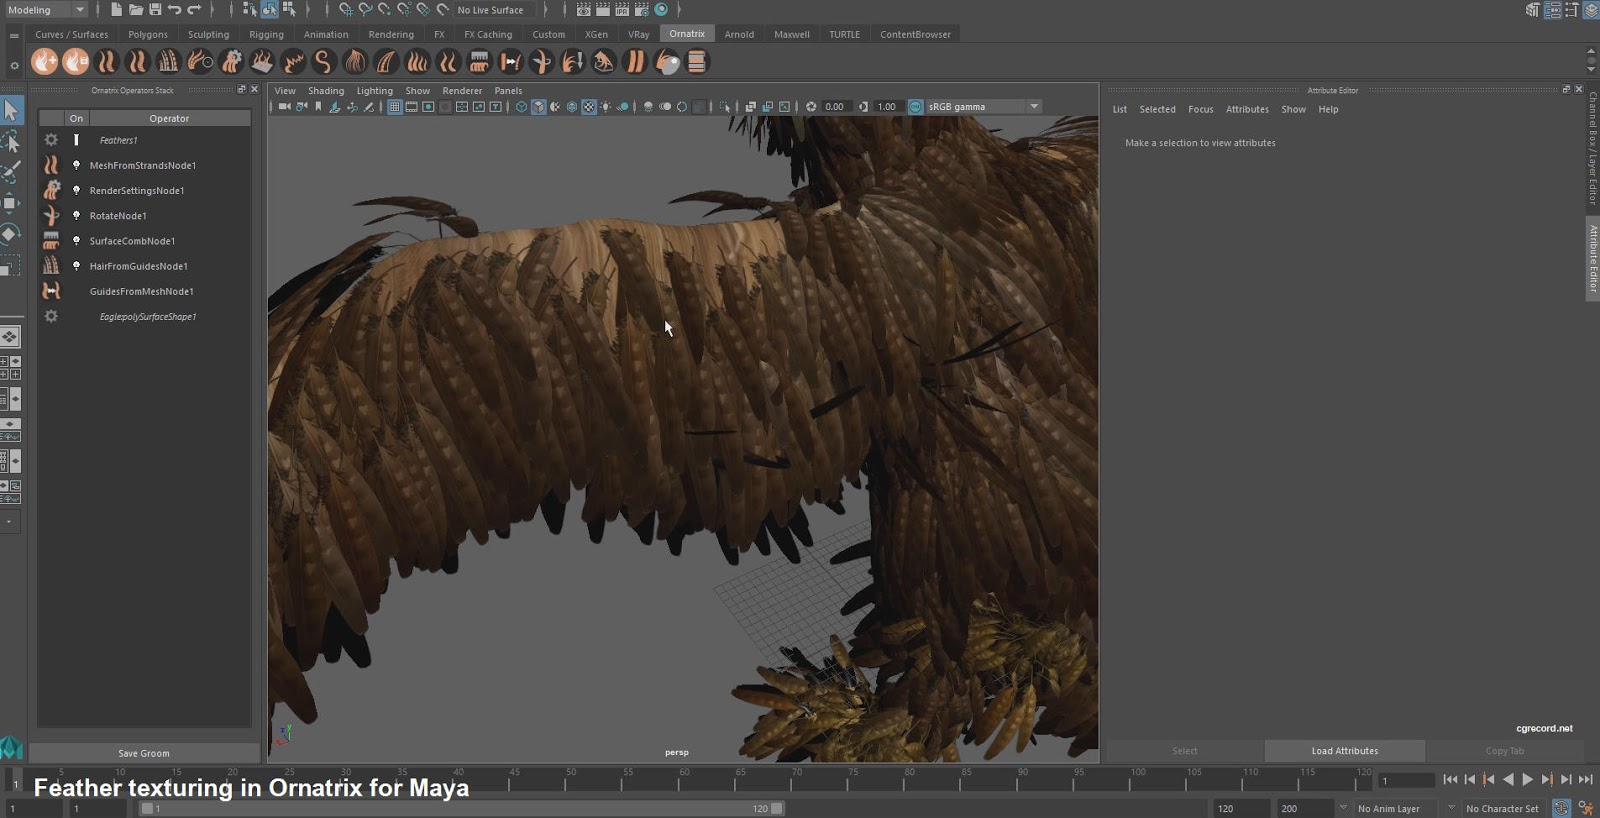 Feather texturing in Ornatrix for Maya | CG TUTORIAL